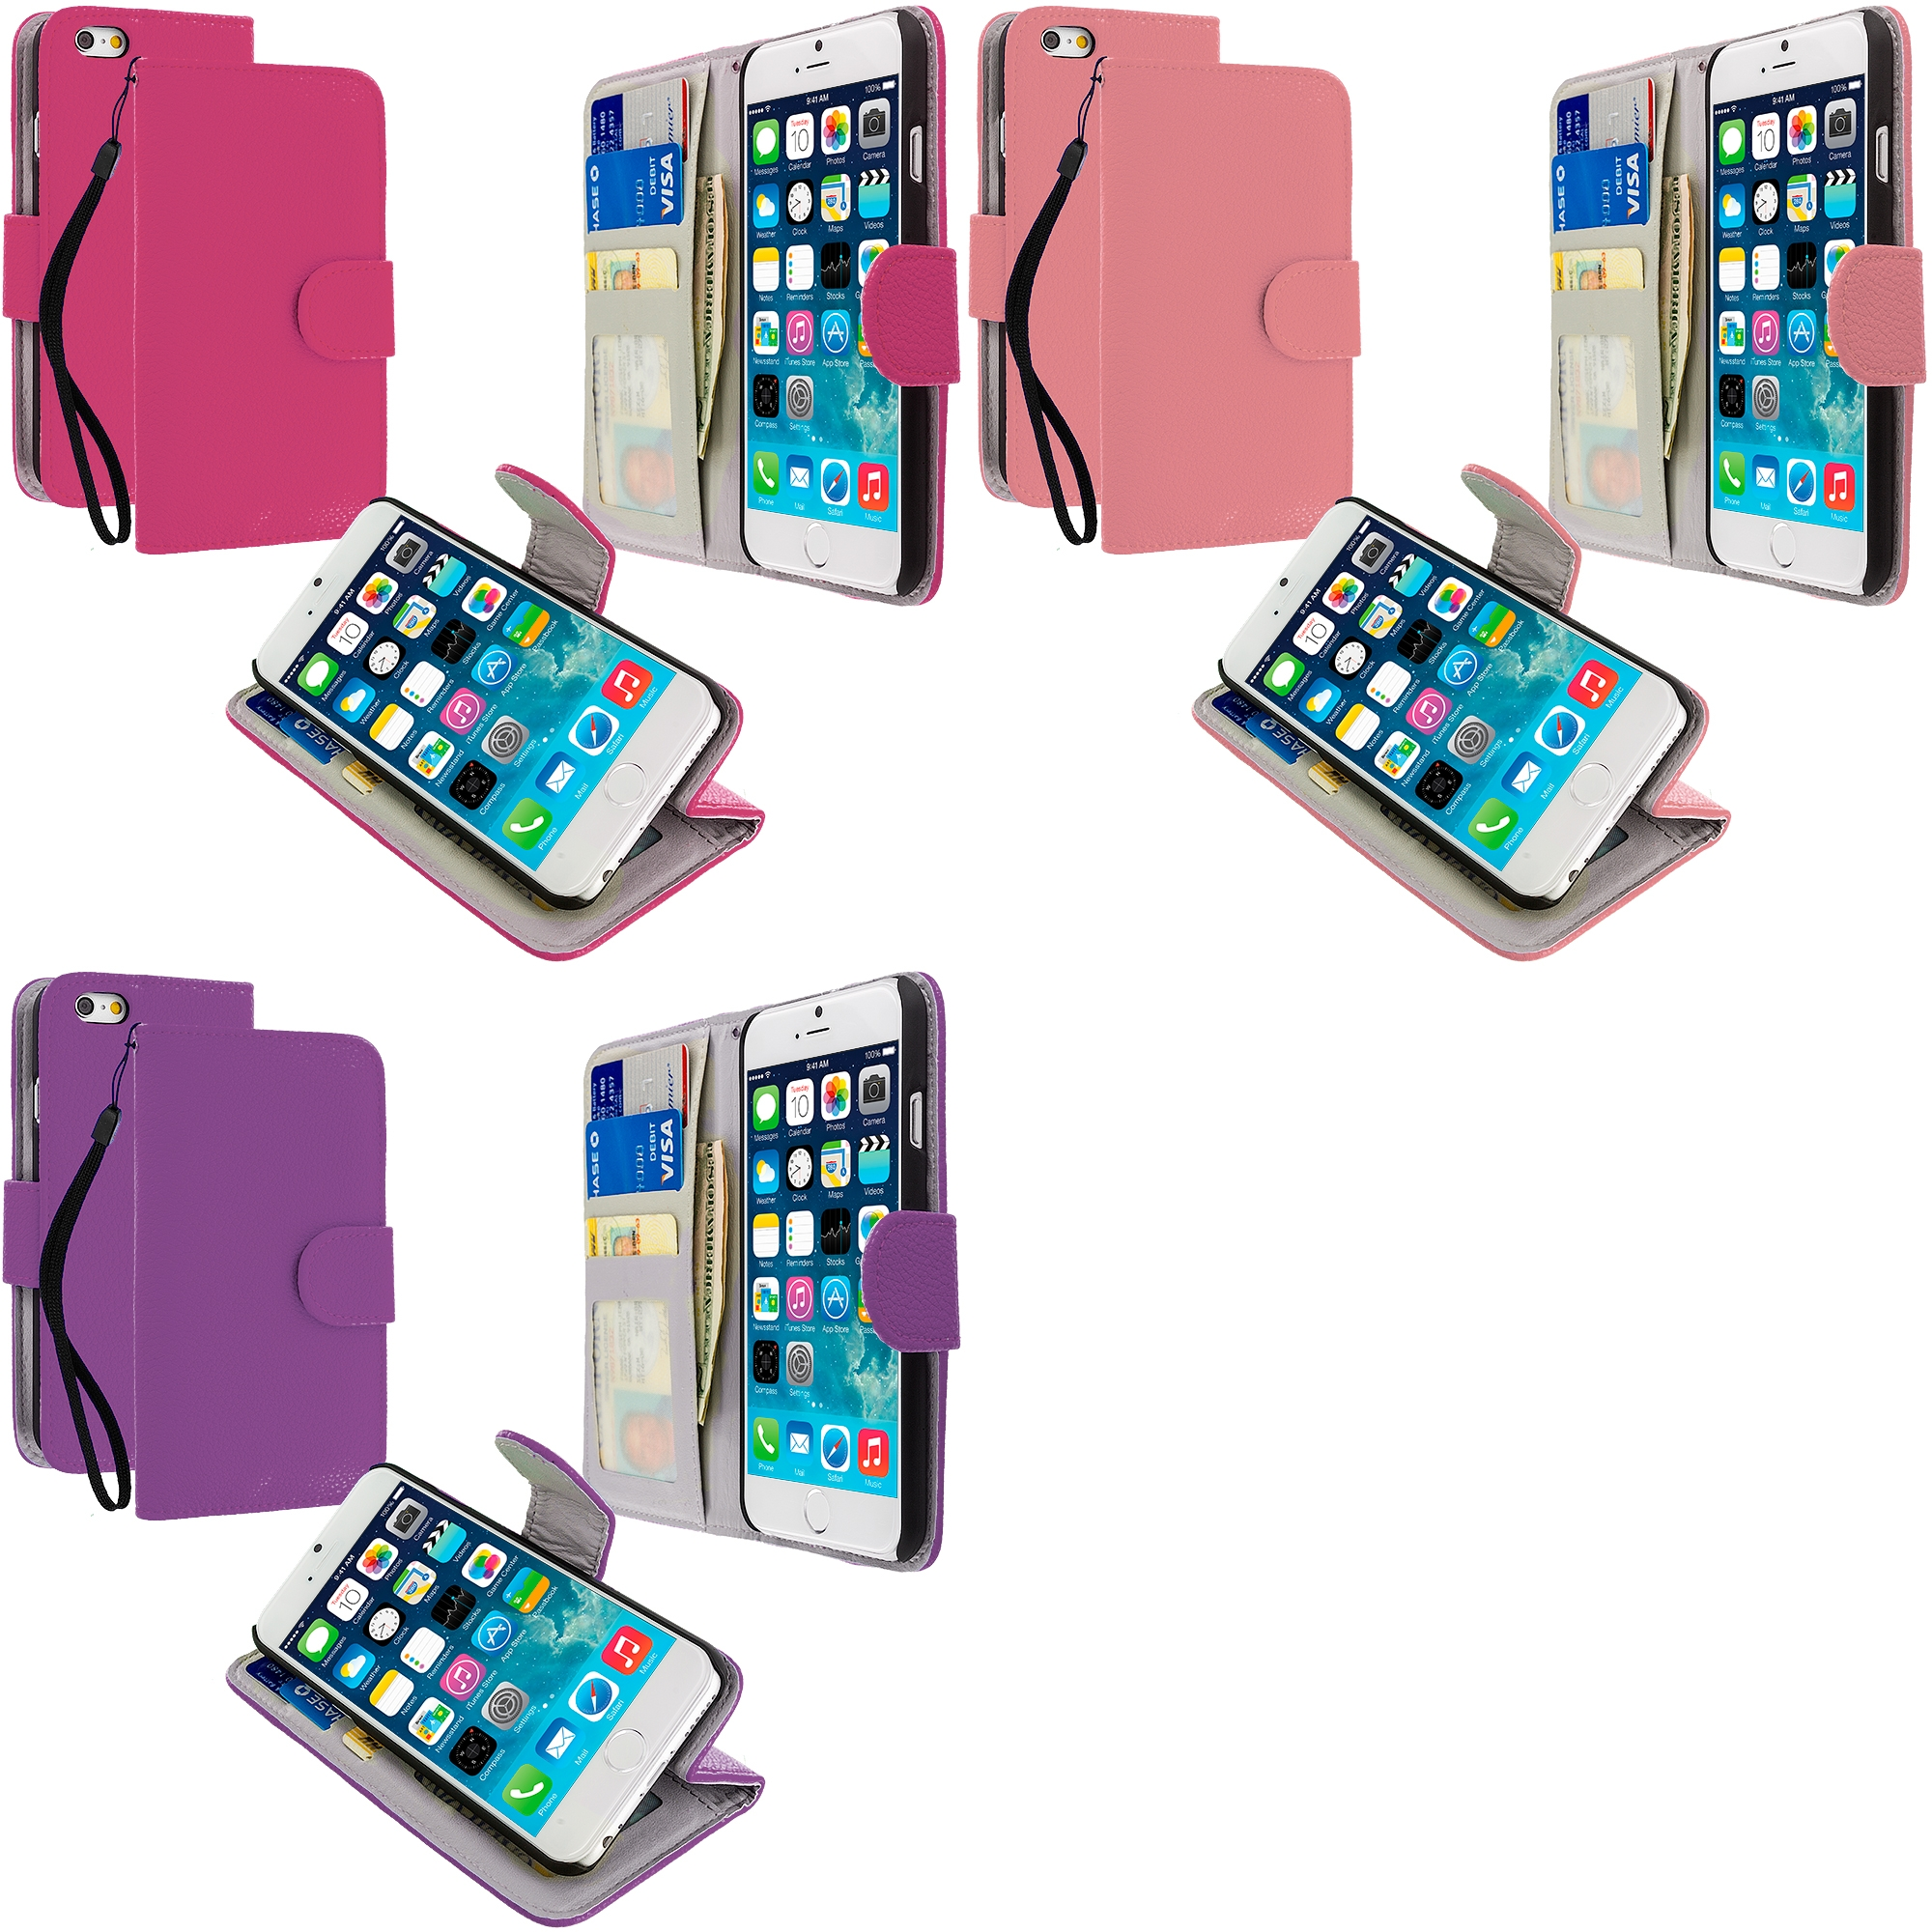 Apple iPhone 6 3 in 1 Bundle - Leather Wallet Pouch Case Cover with Slots